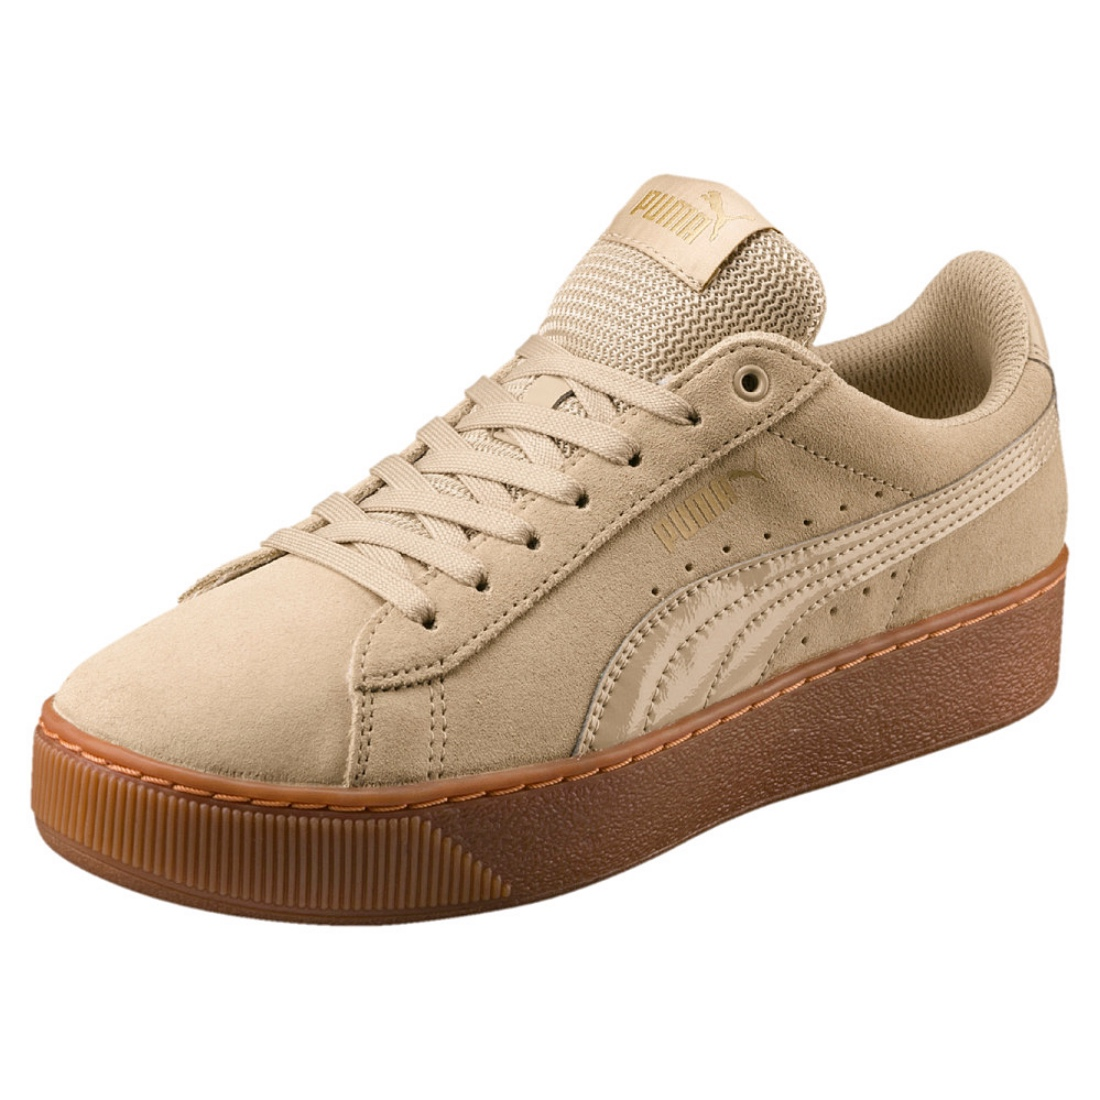 193d4b291218 Details about Puma Vikky Platform Ladies Sneaker Shoes 363287 Pebble Offer